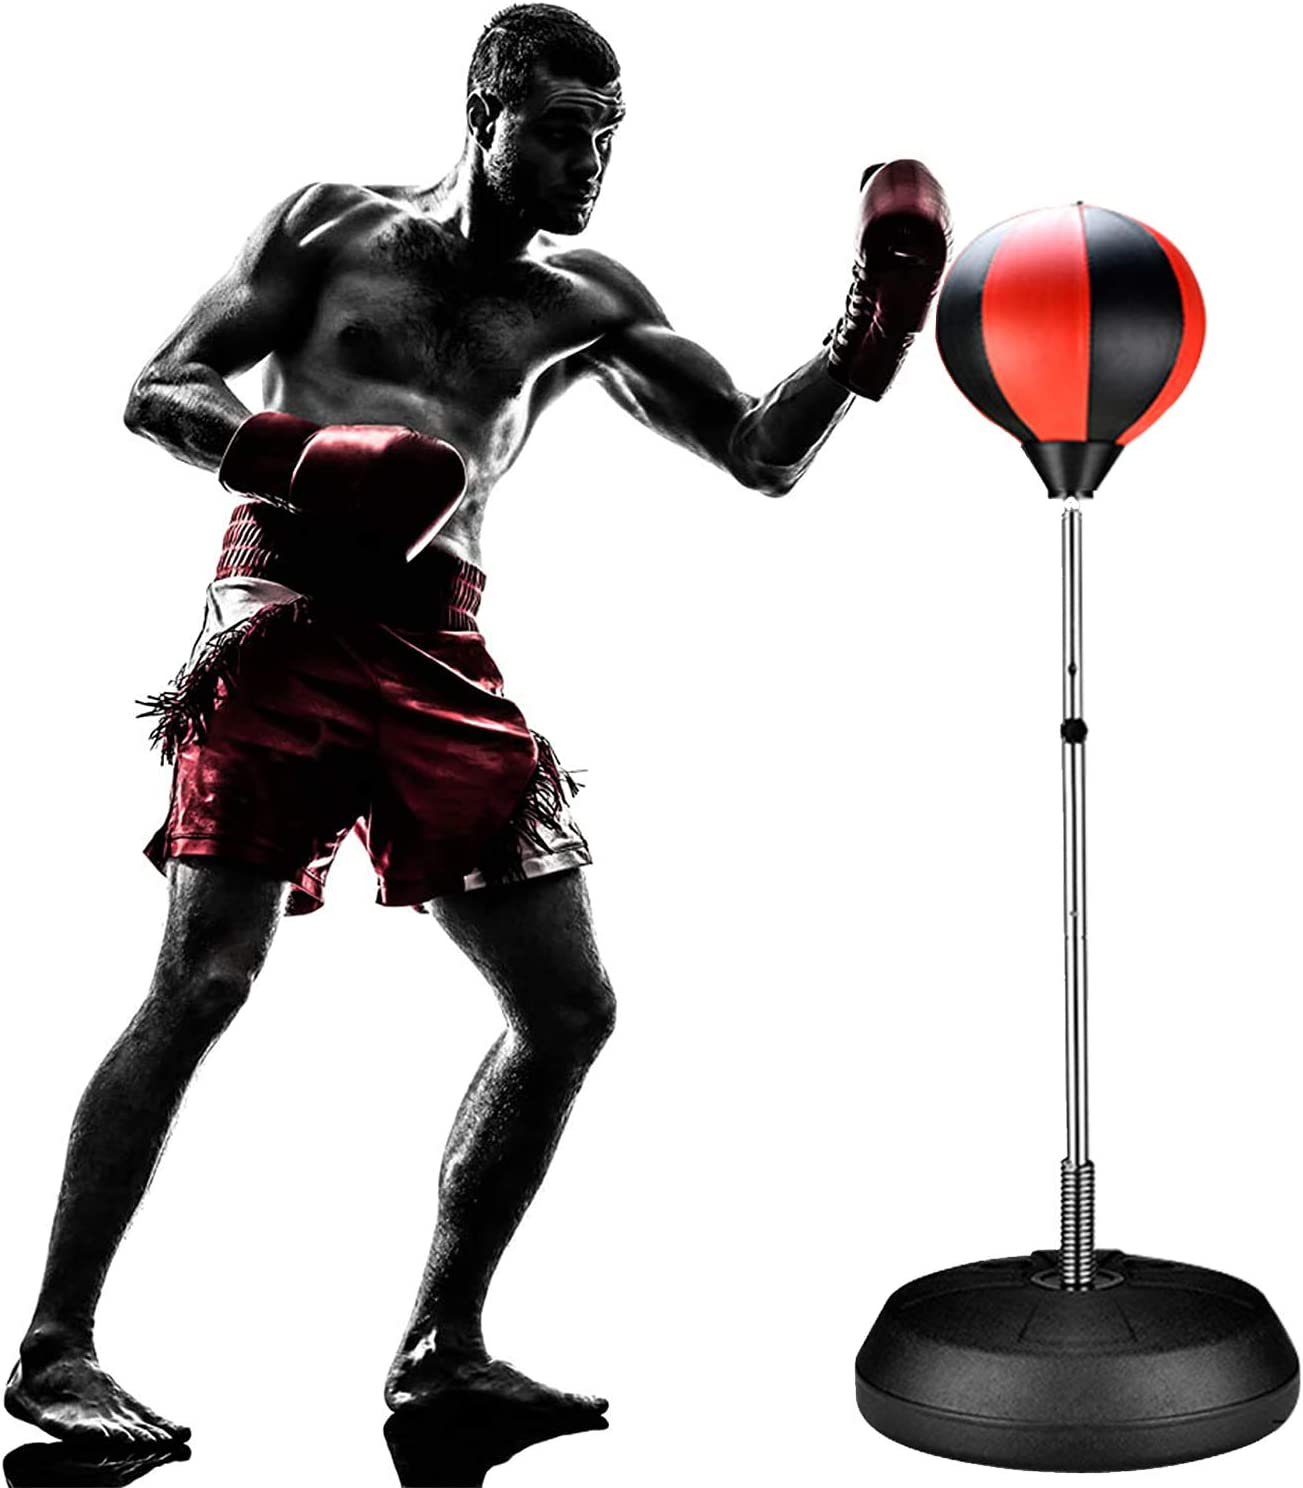 ifidex Jackgold Punching Bag Reflex Boxing Bag with Stand, Height Adjustable - Freestanding Punching Ball Speed Bag - Great for MMA Training, Stress Relief & Fitness